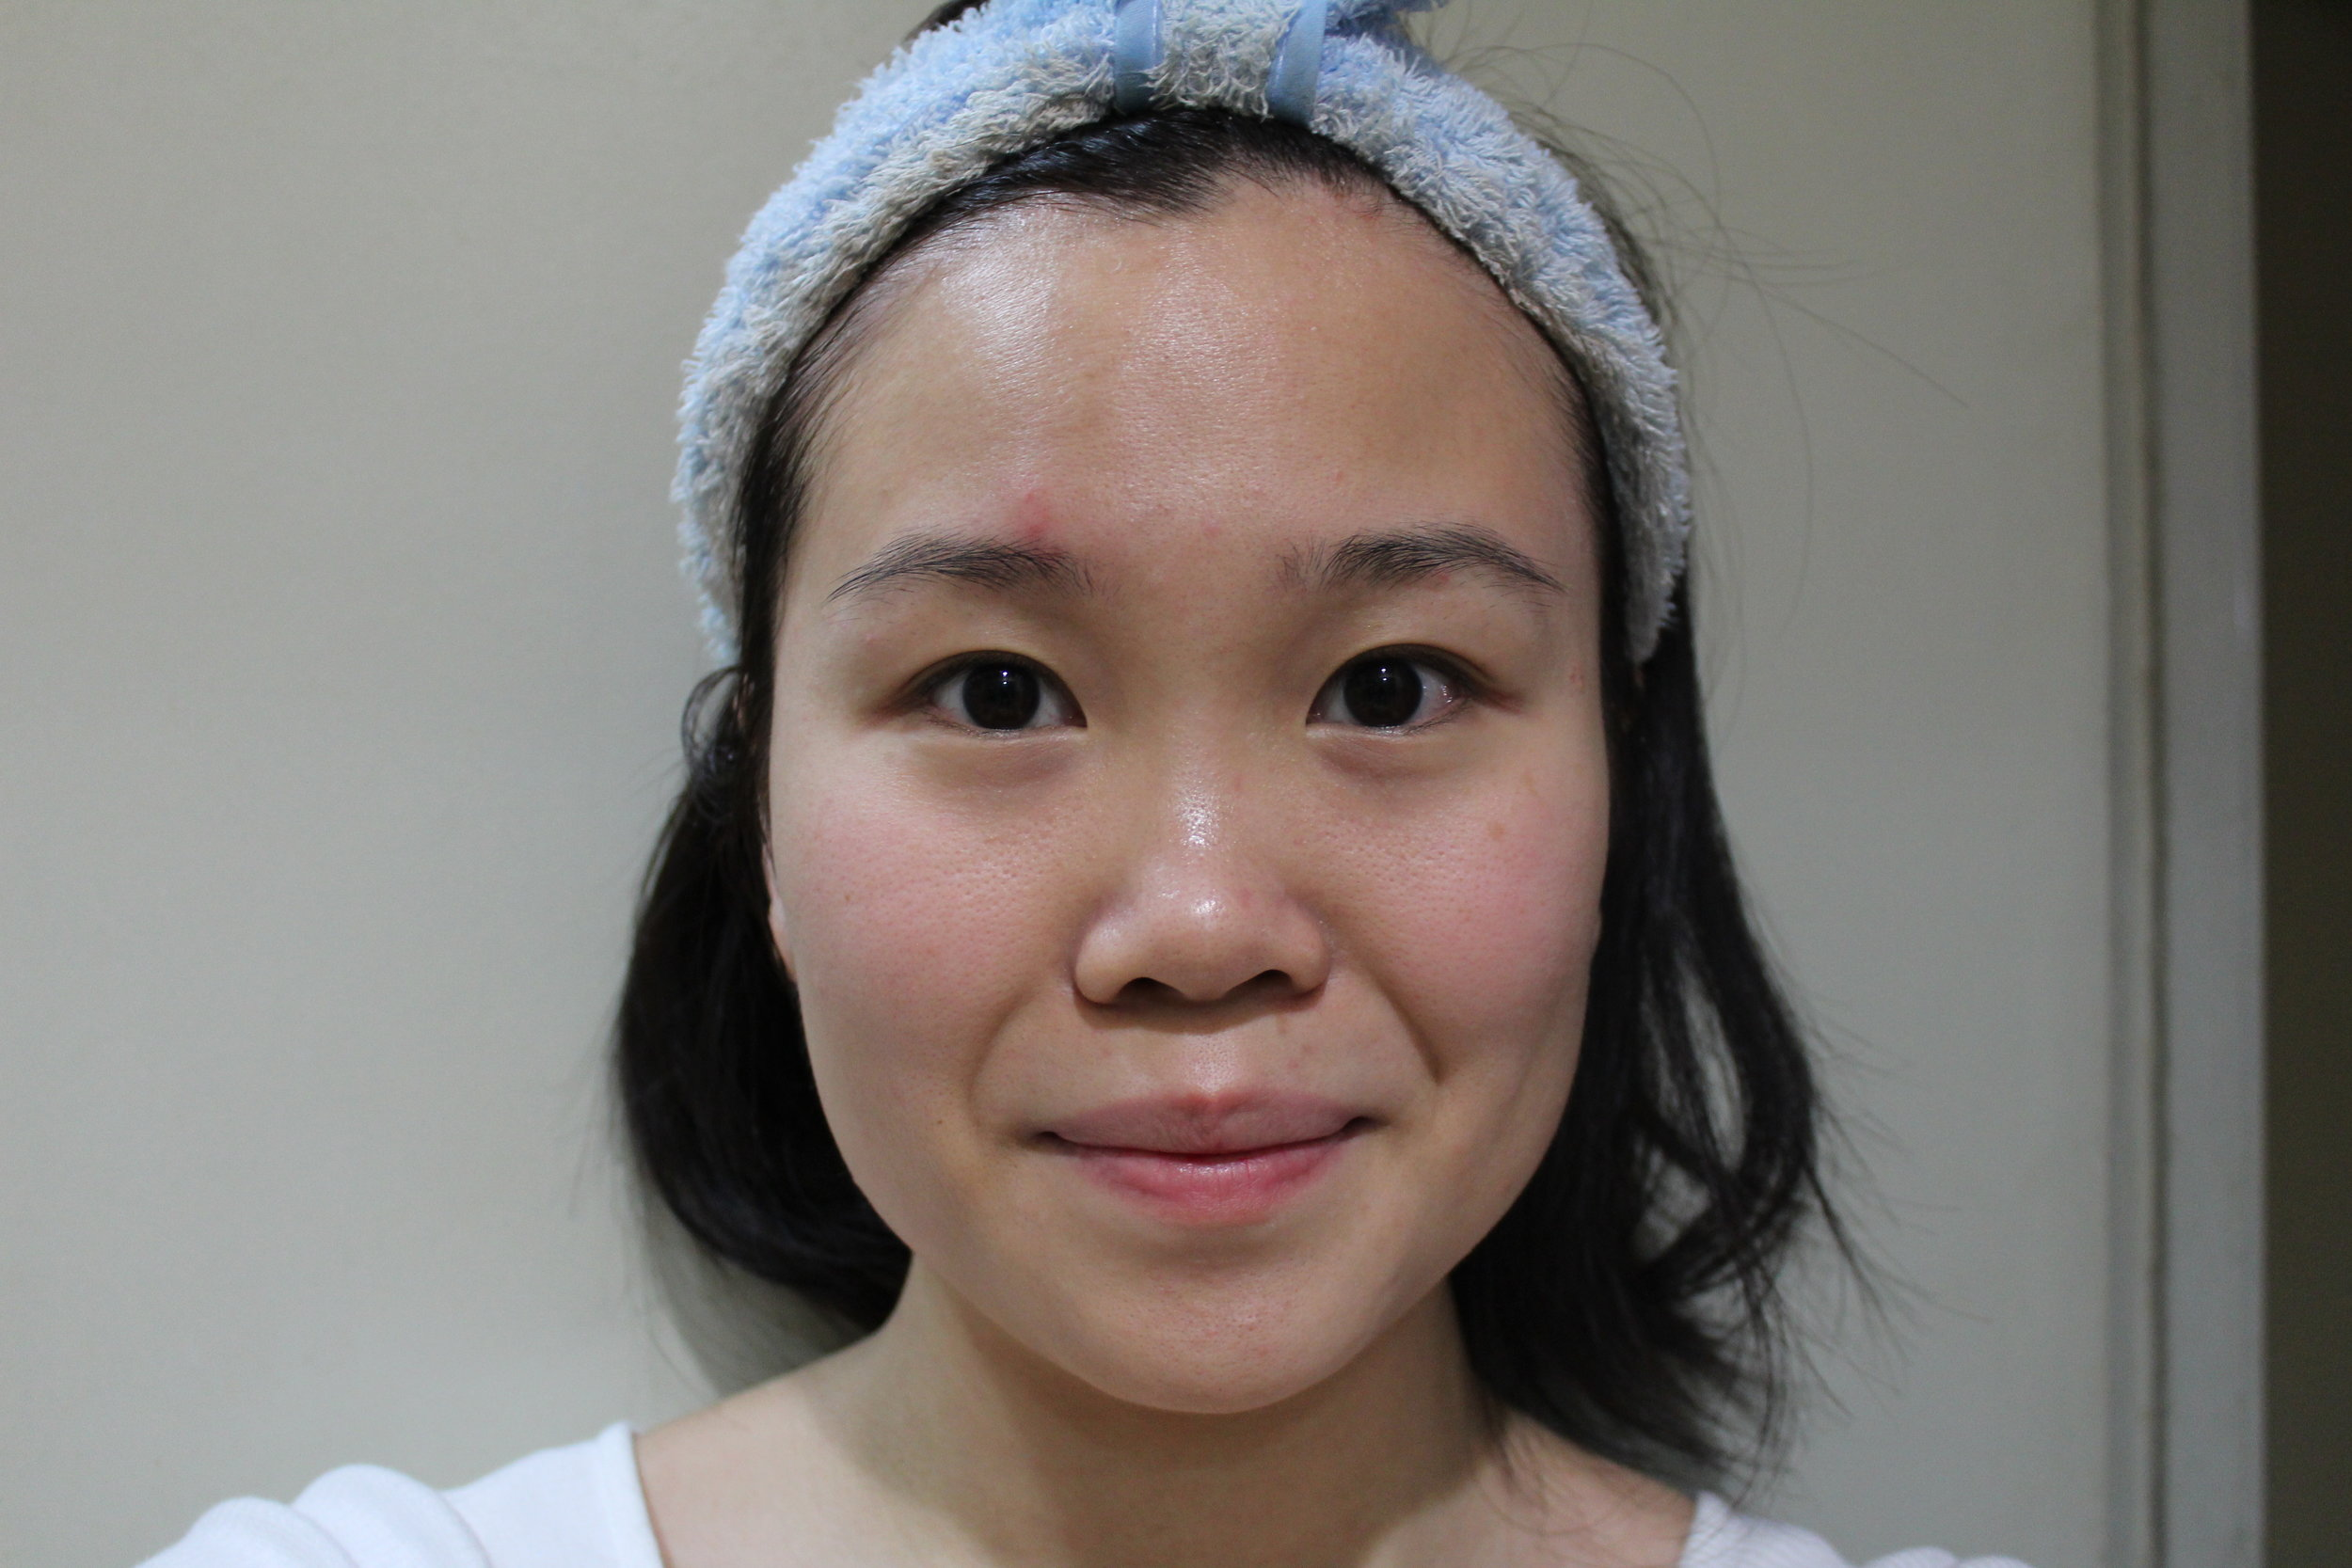 The state of my face, before using Freshel